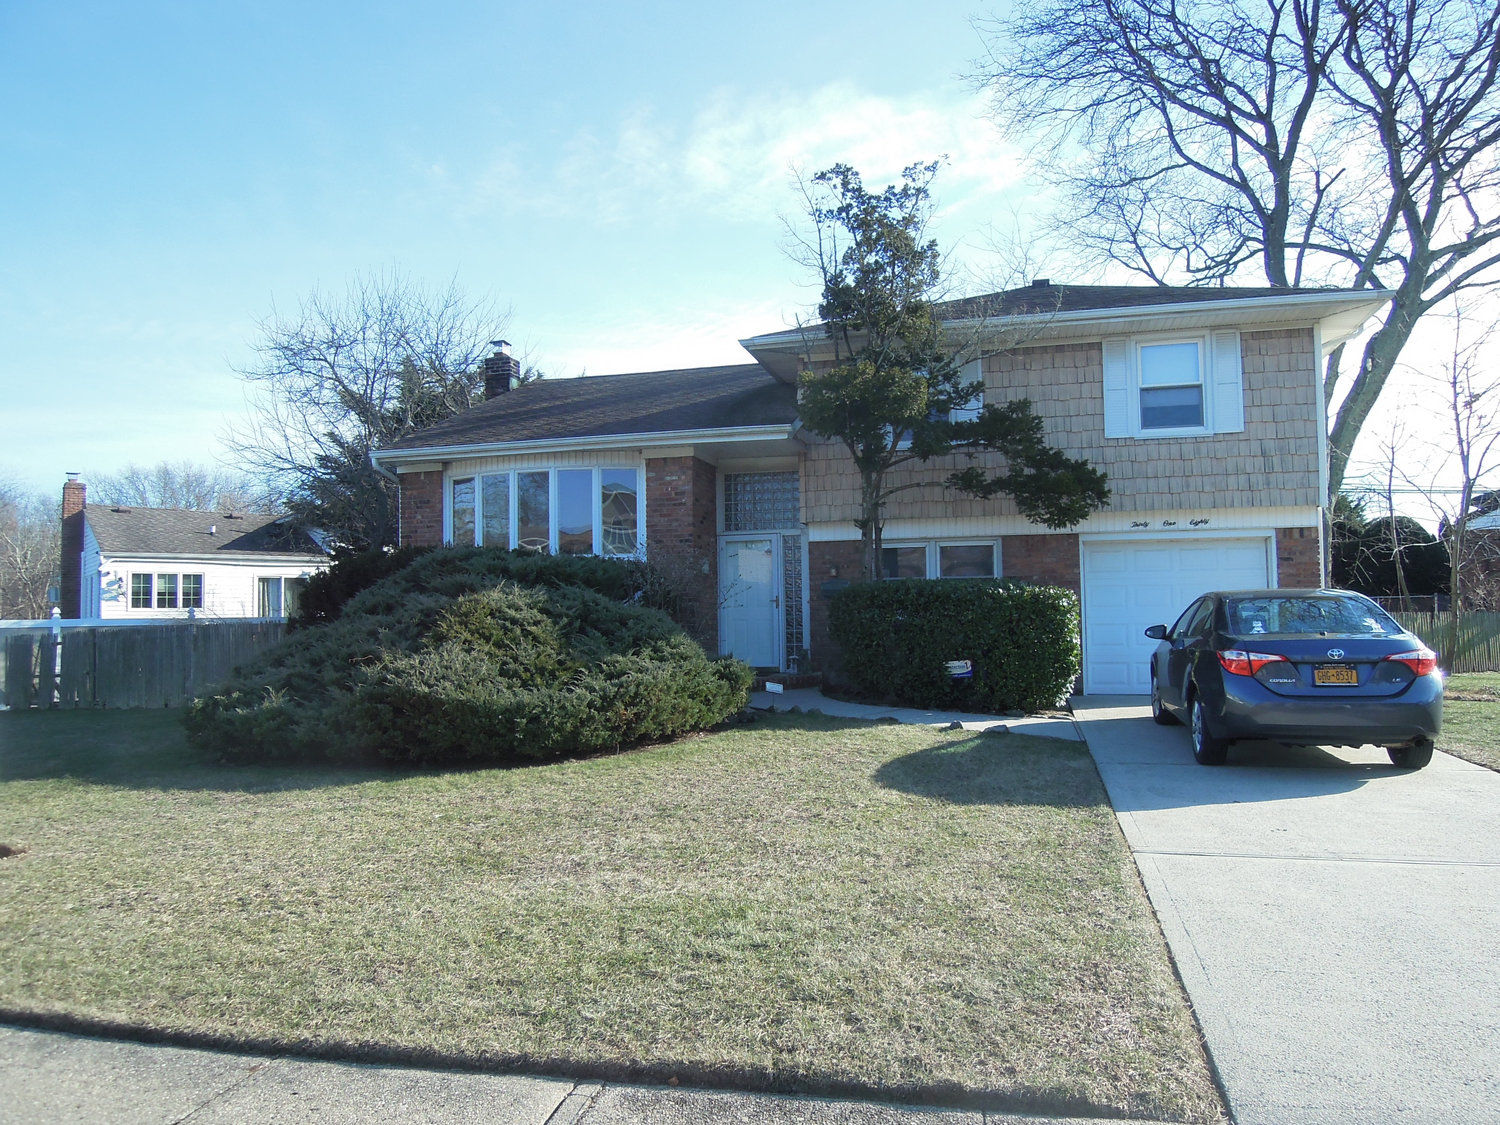 A three-bedroom, two-bathroom house on Birch Drive in Wantagh listing for $529,999.